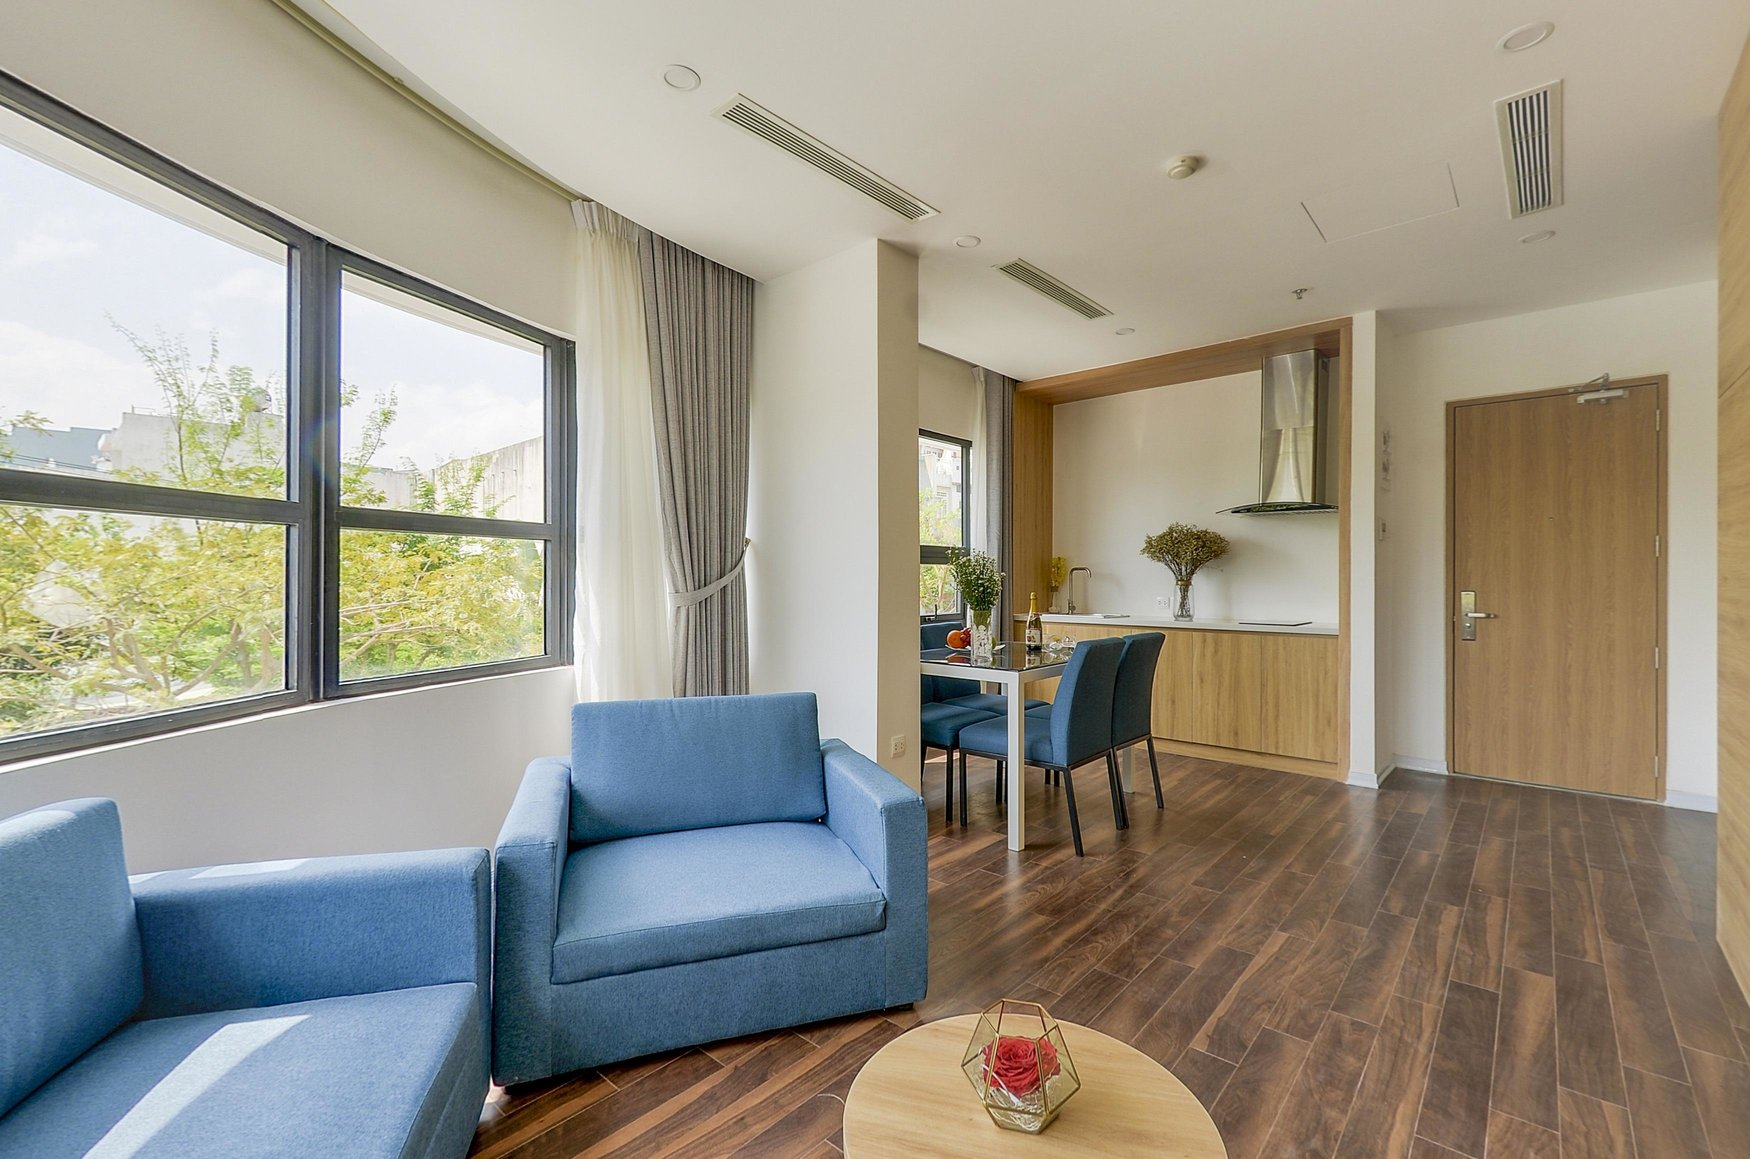 Luxury apartment for rent in Danang